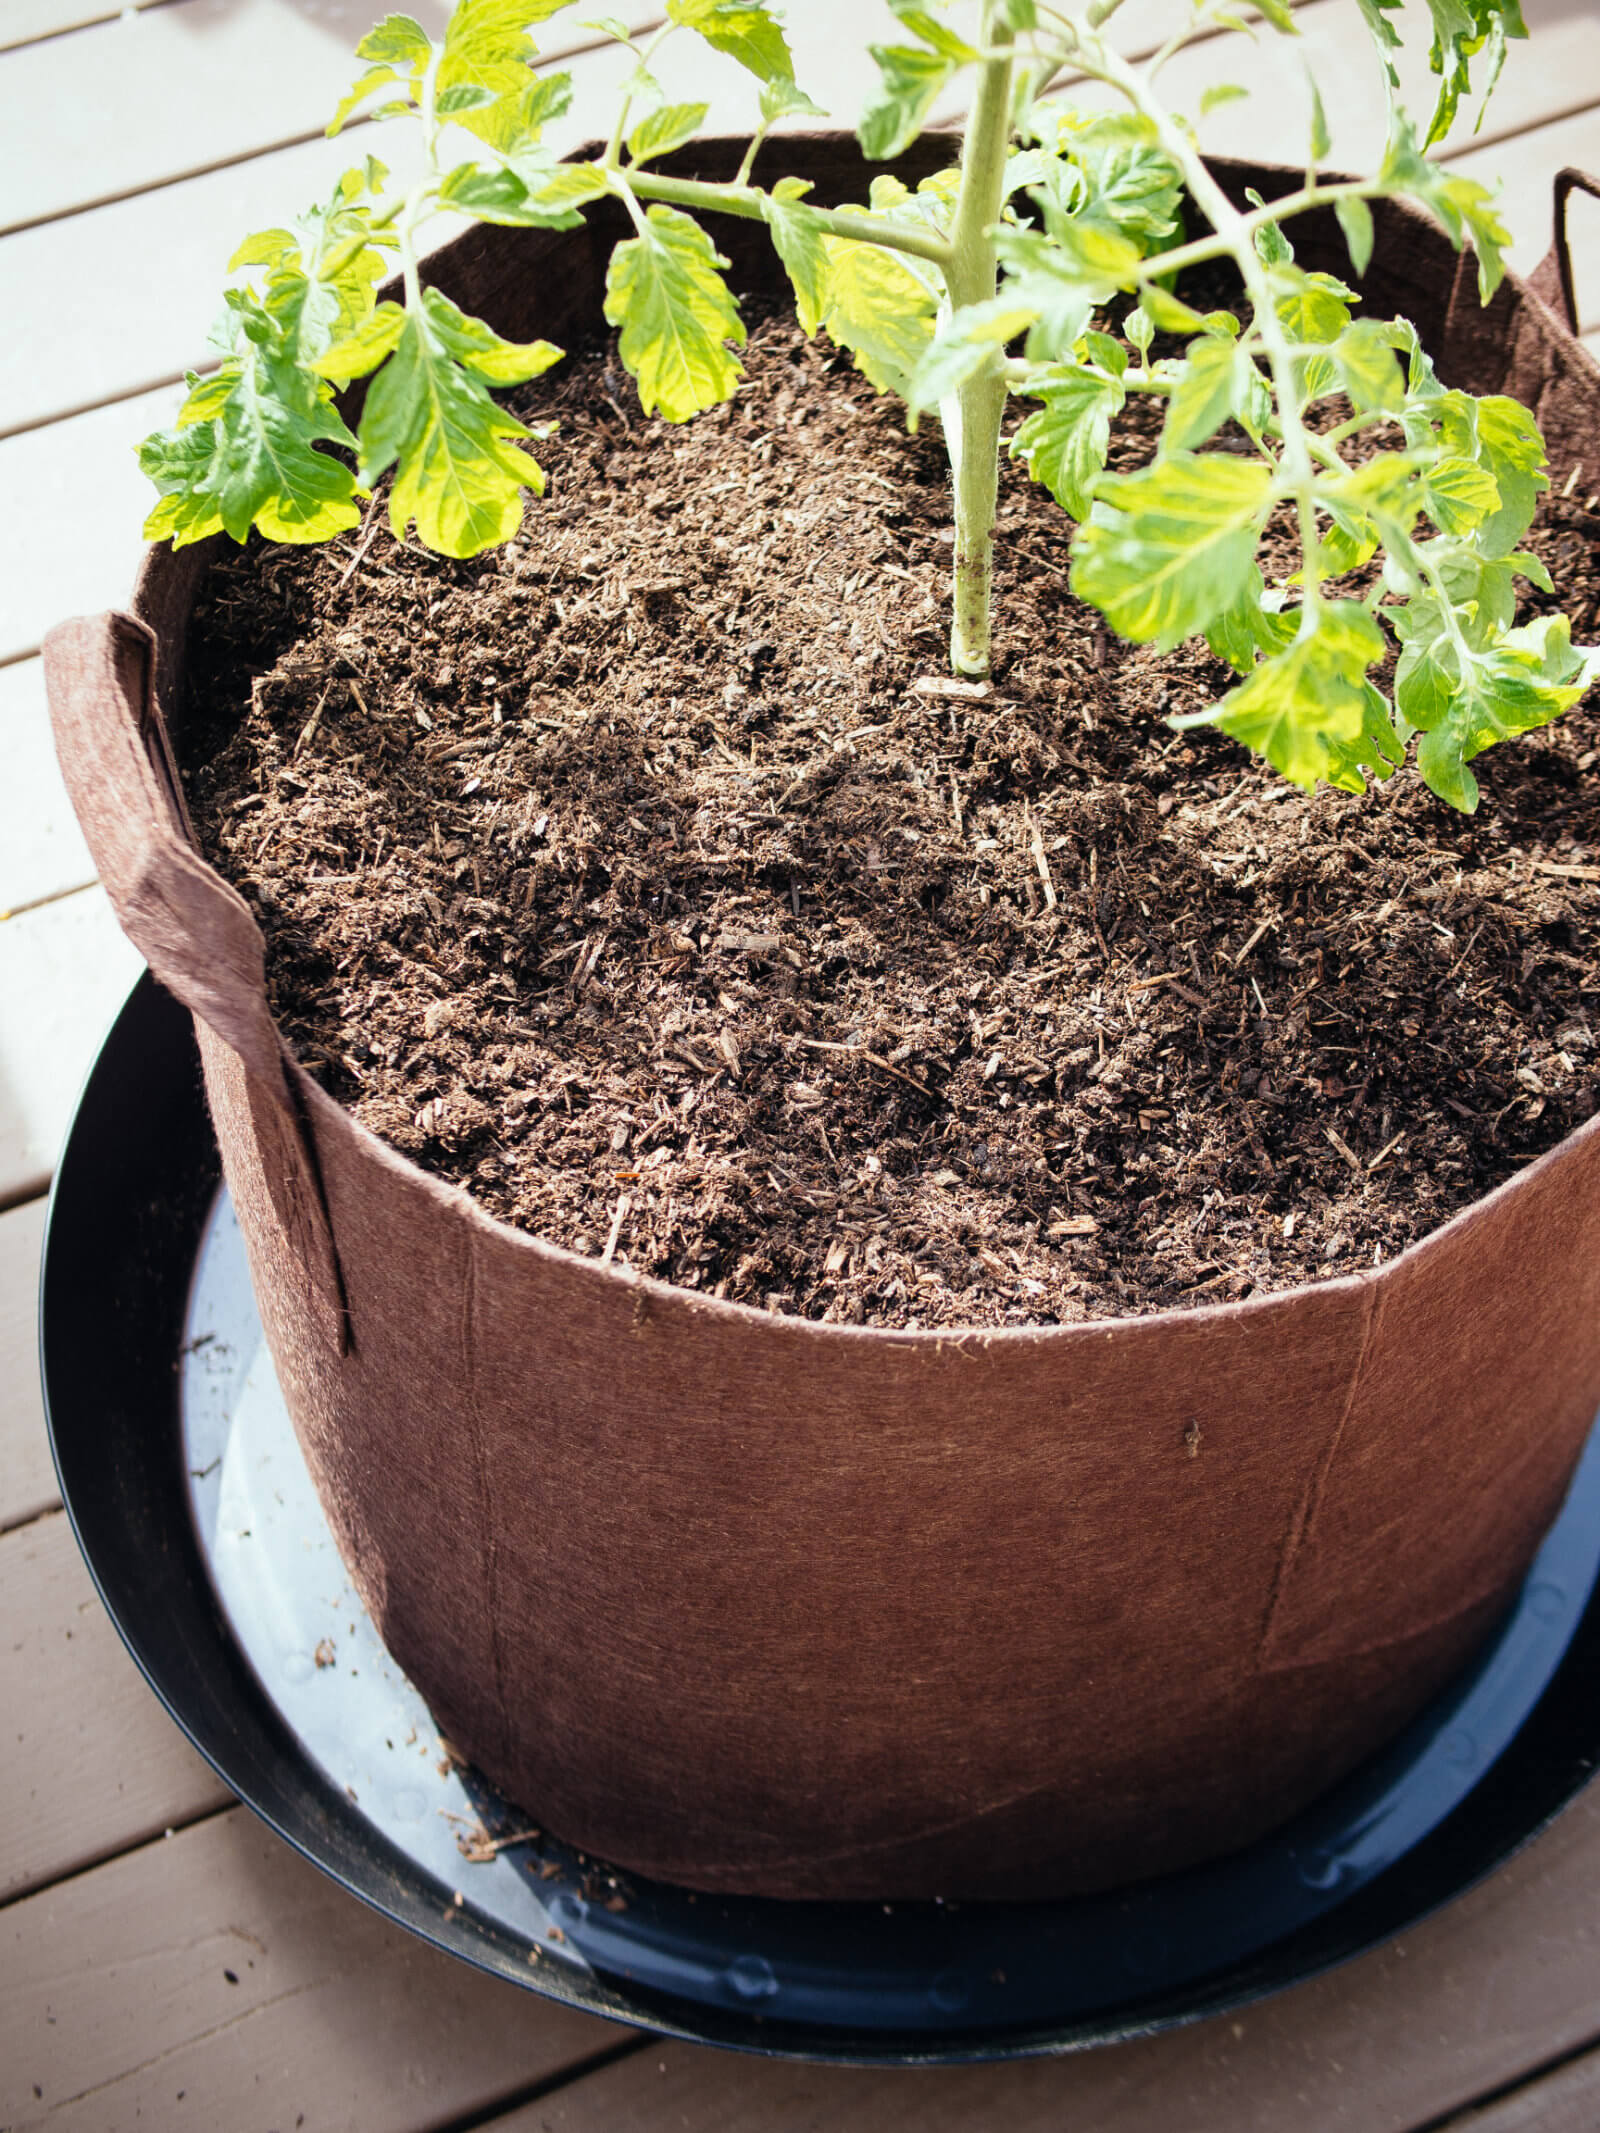 Use high-quality potting soil for growing tomatoes in containers